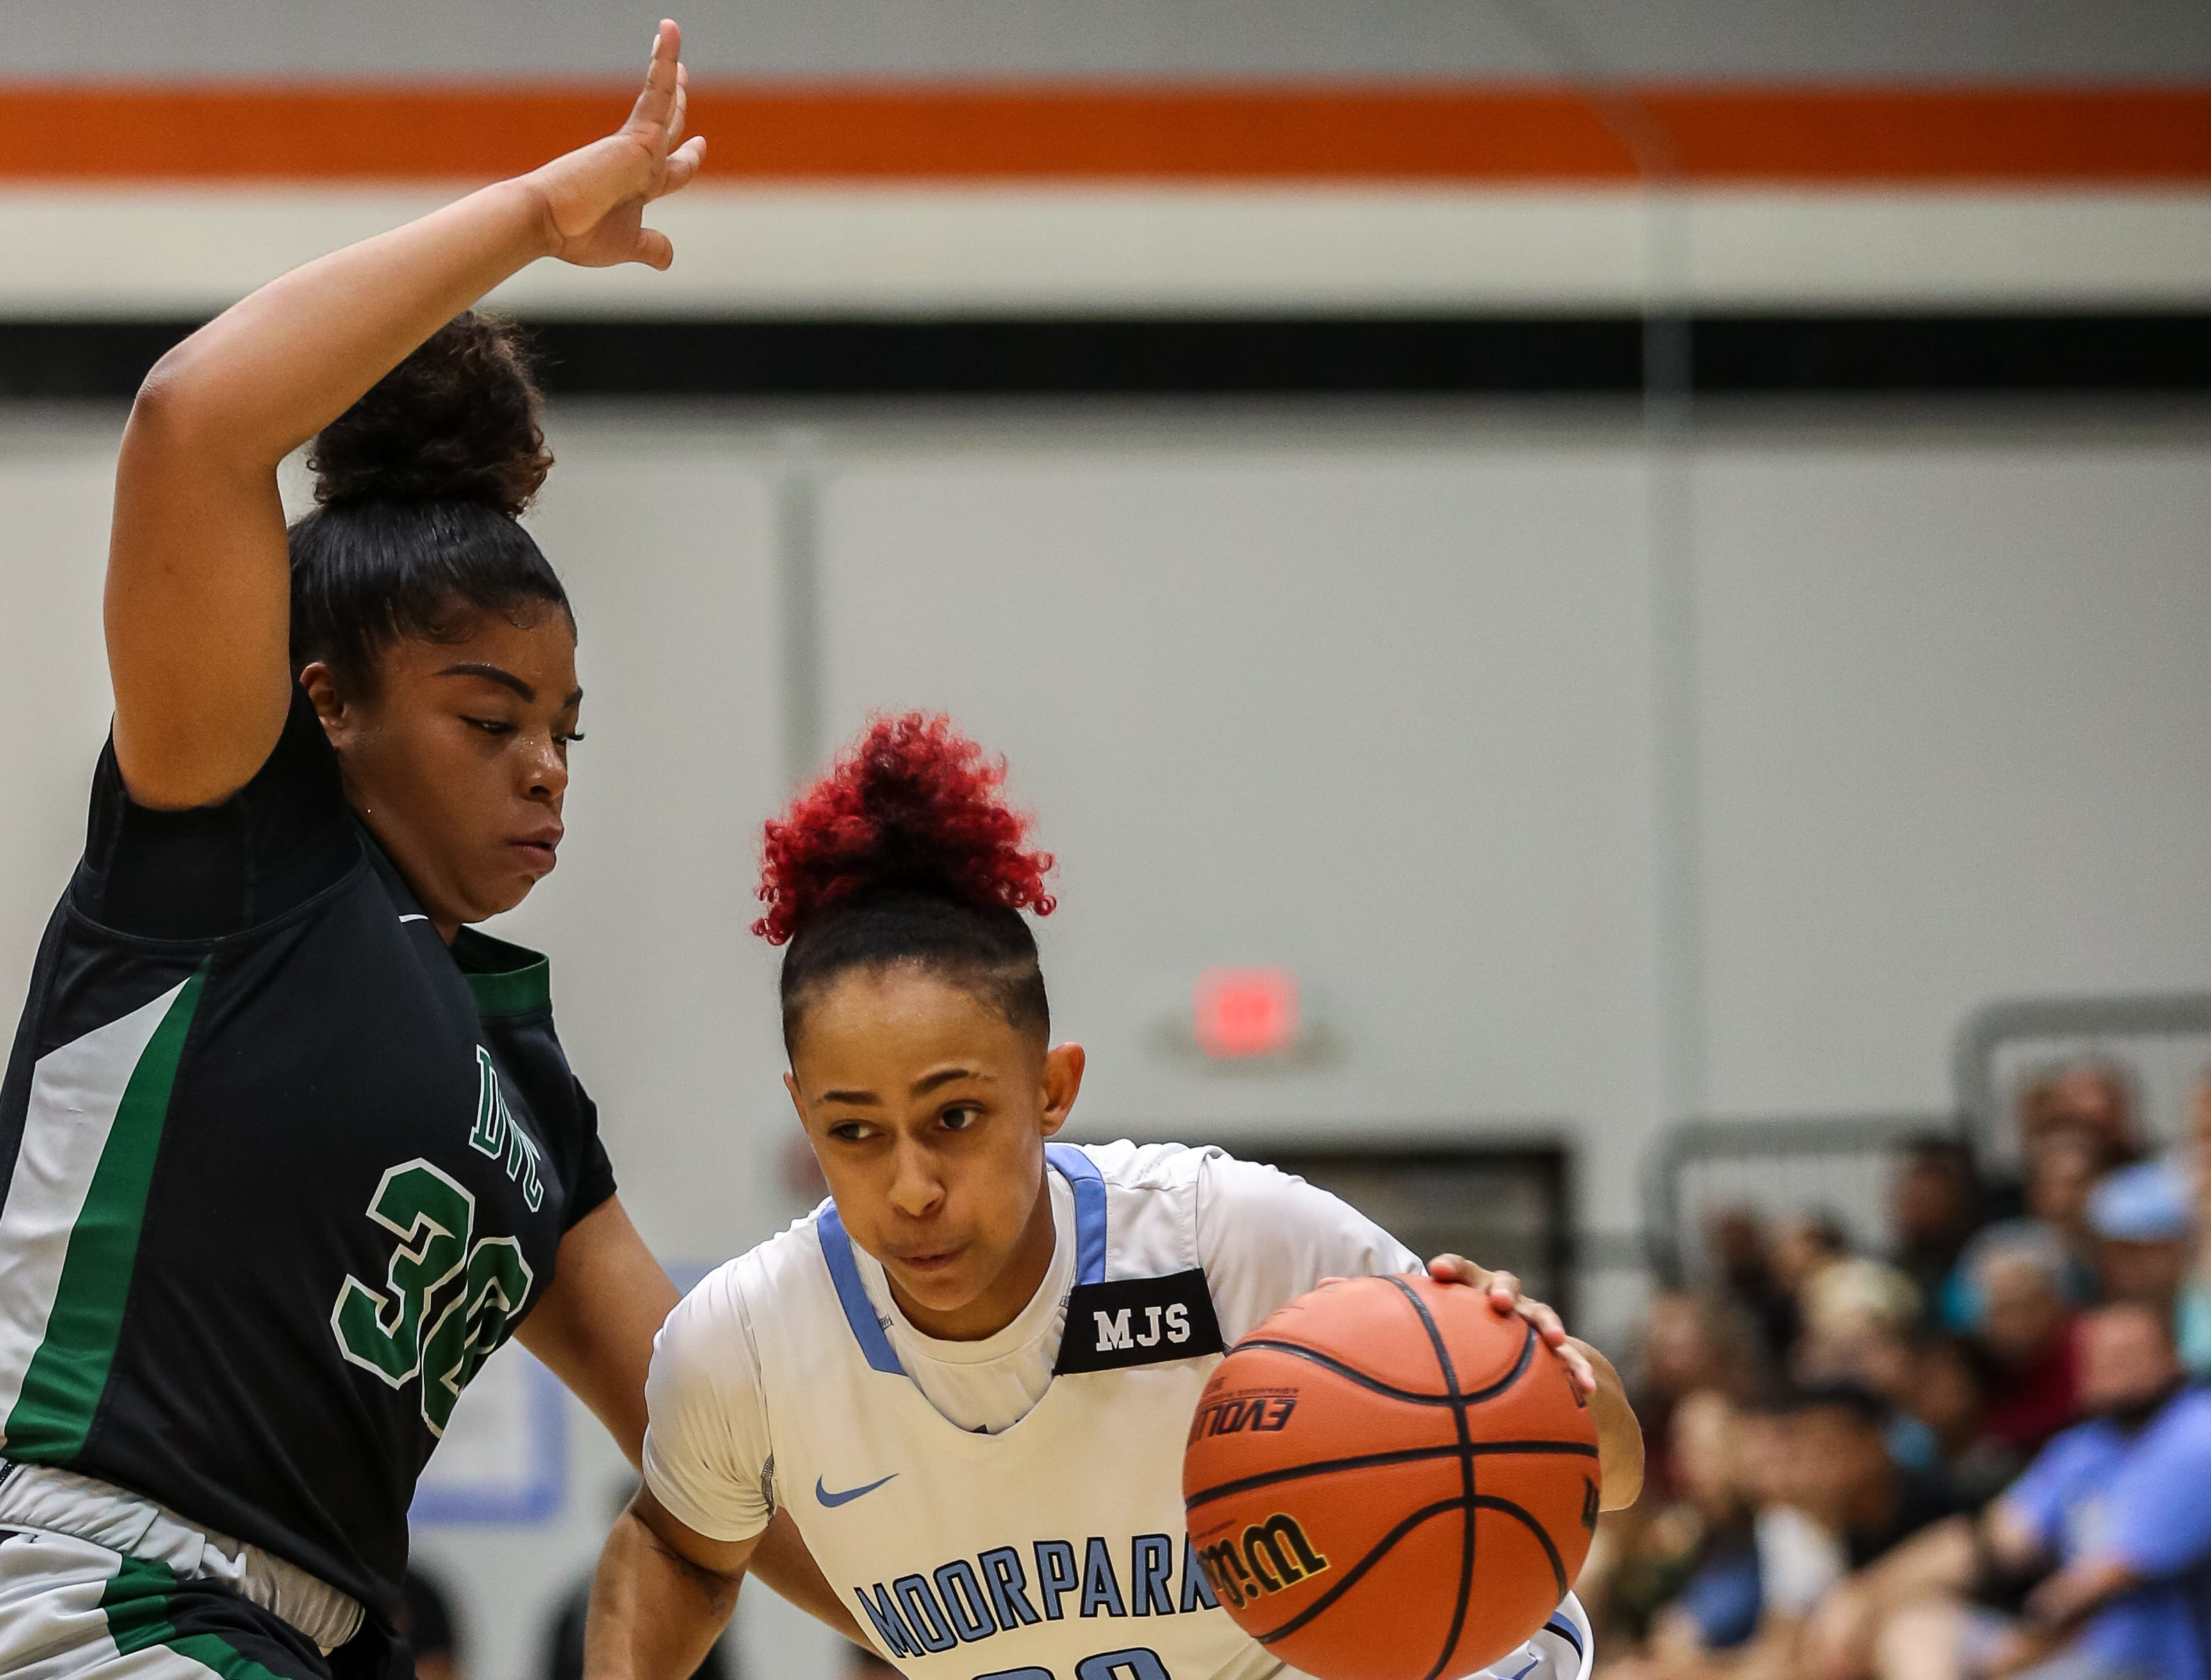 Moorpark College's Breanna Calhoun dribbles around Diablo Valley College's Jahnay Anderson during the CCCAA state championship game at Ventura College on Sunday. Moorpark lost, 68-61.